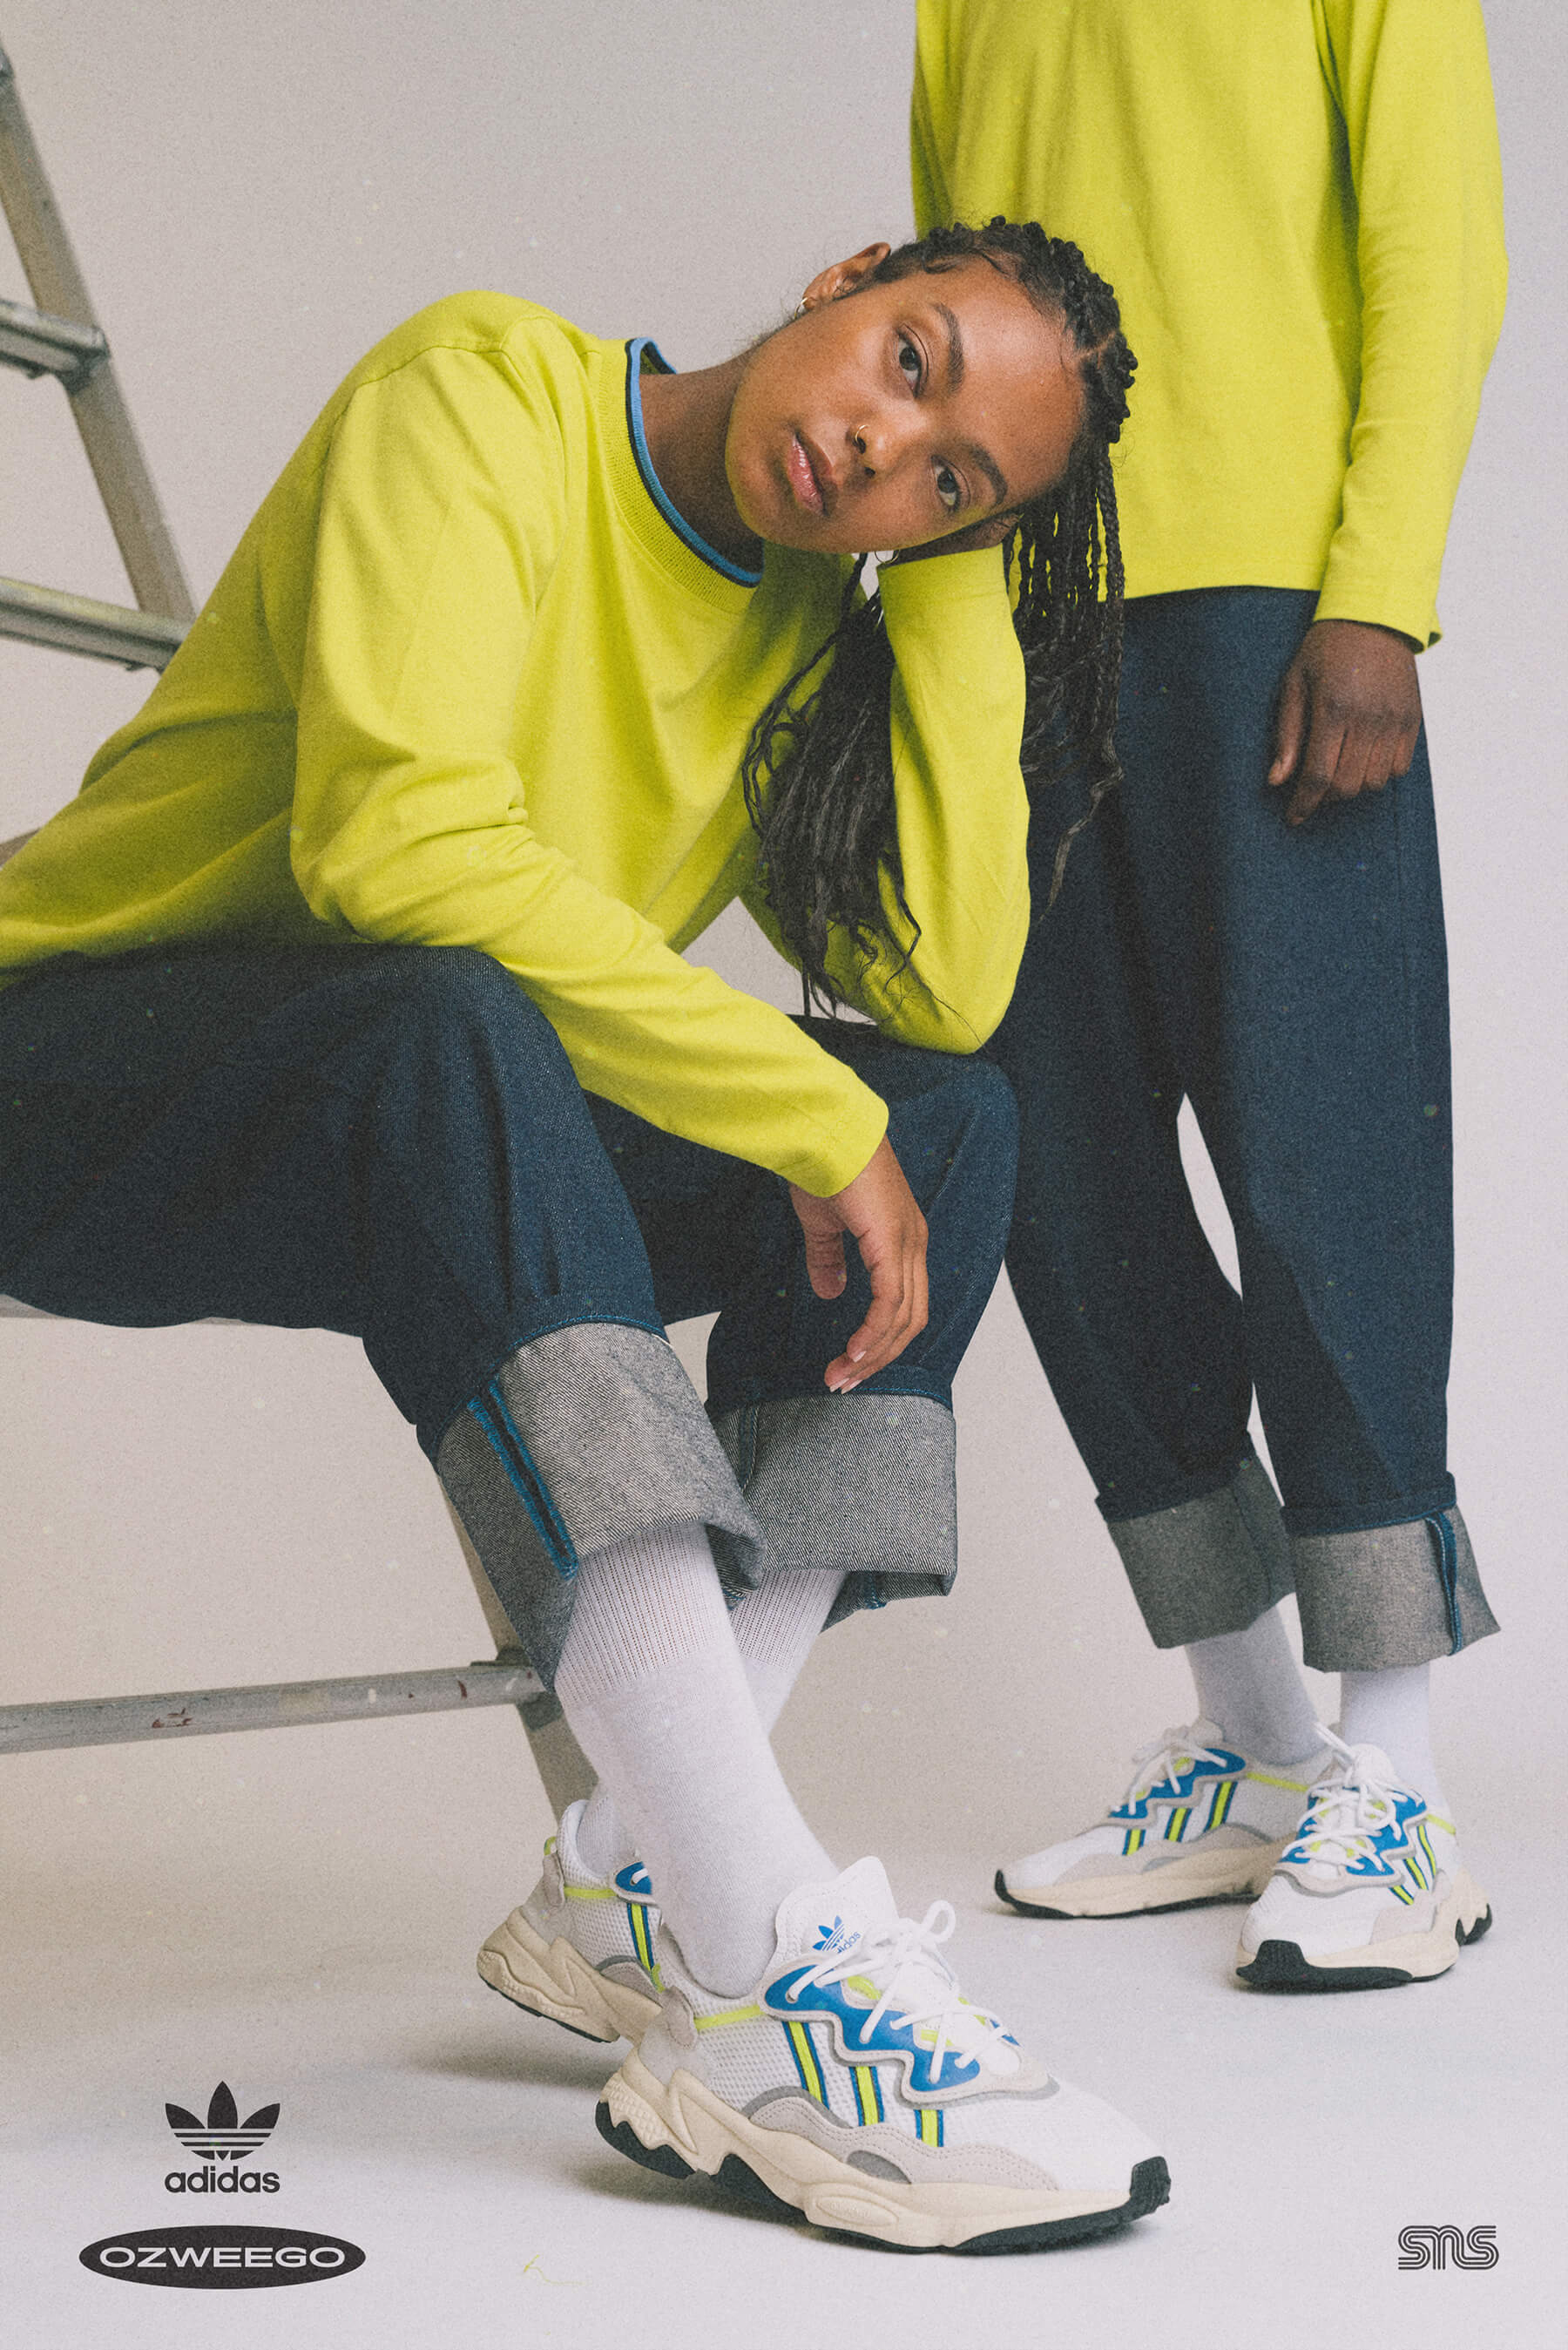 SNS Presents: adidas Ozweego   sneakers